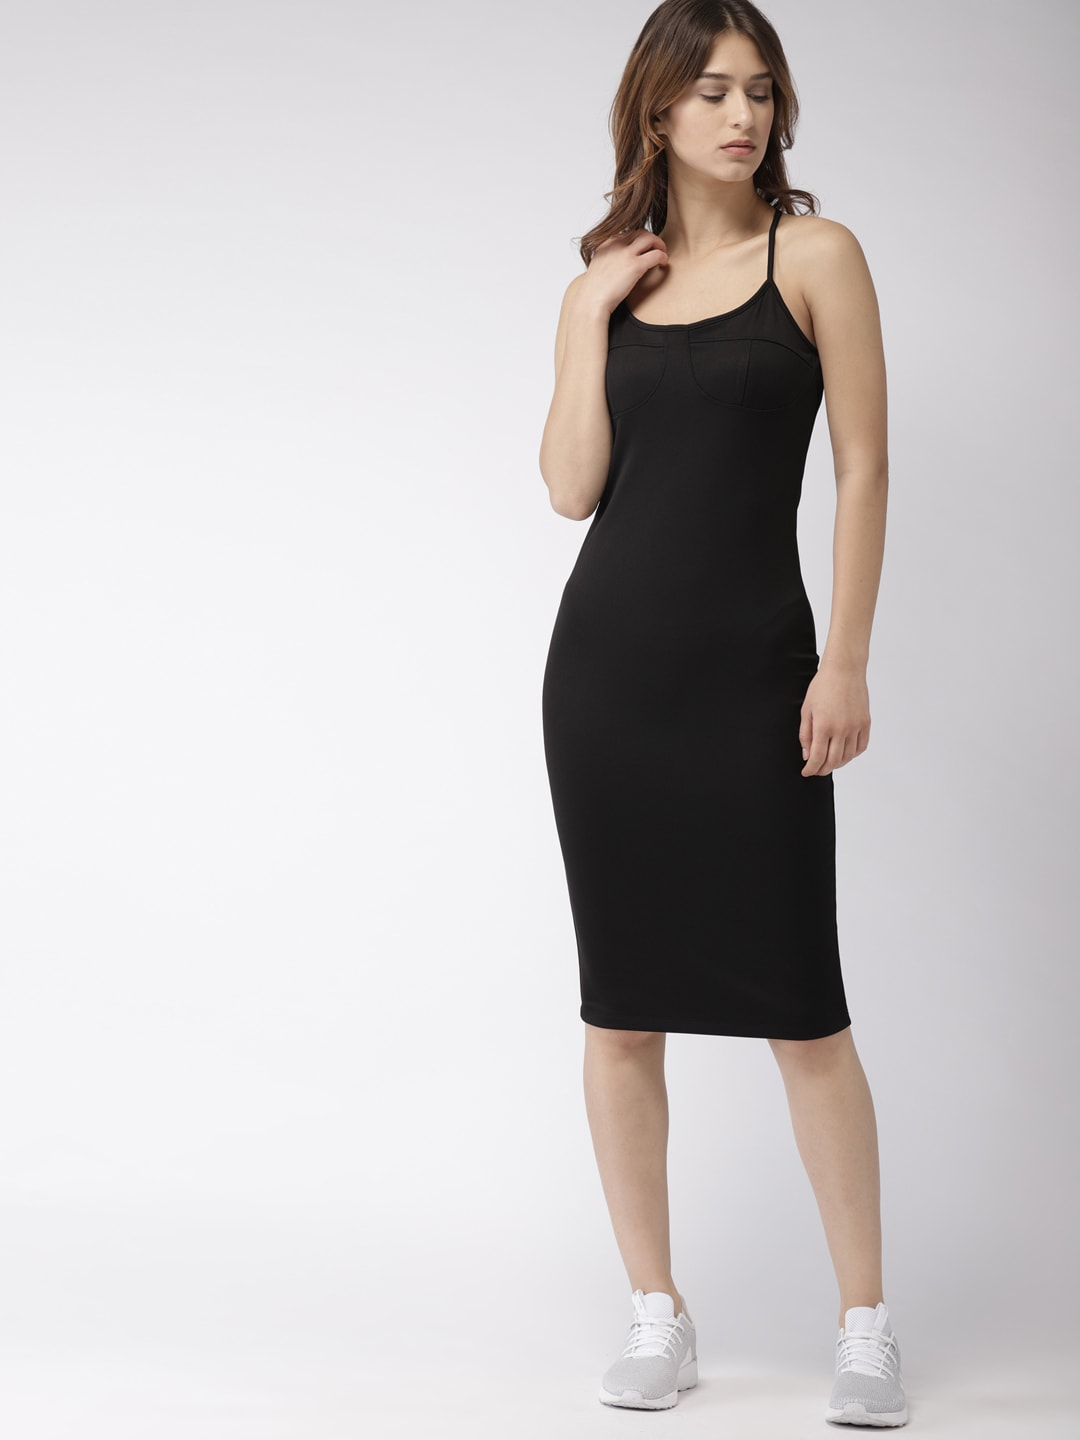 e148c58bafe Bodycon Dress - Buy Stylish Bodycon Dresses Online